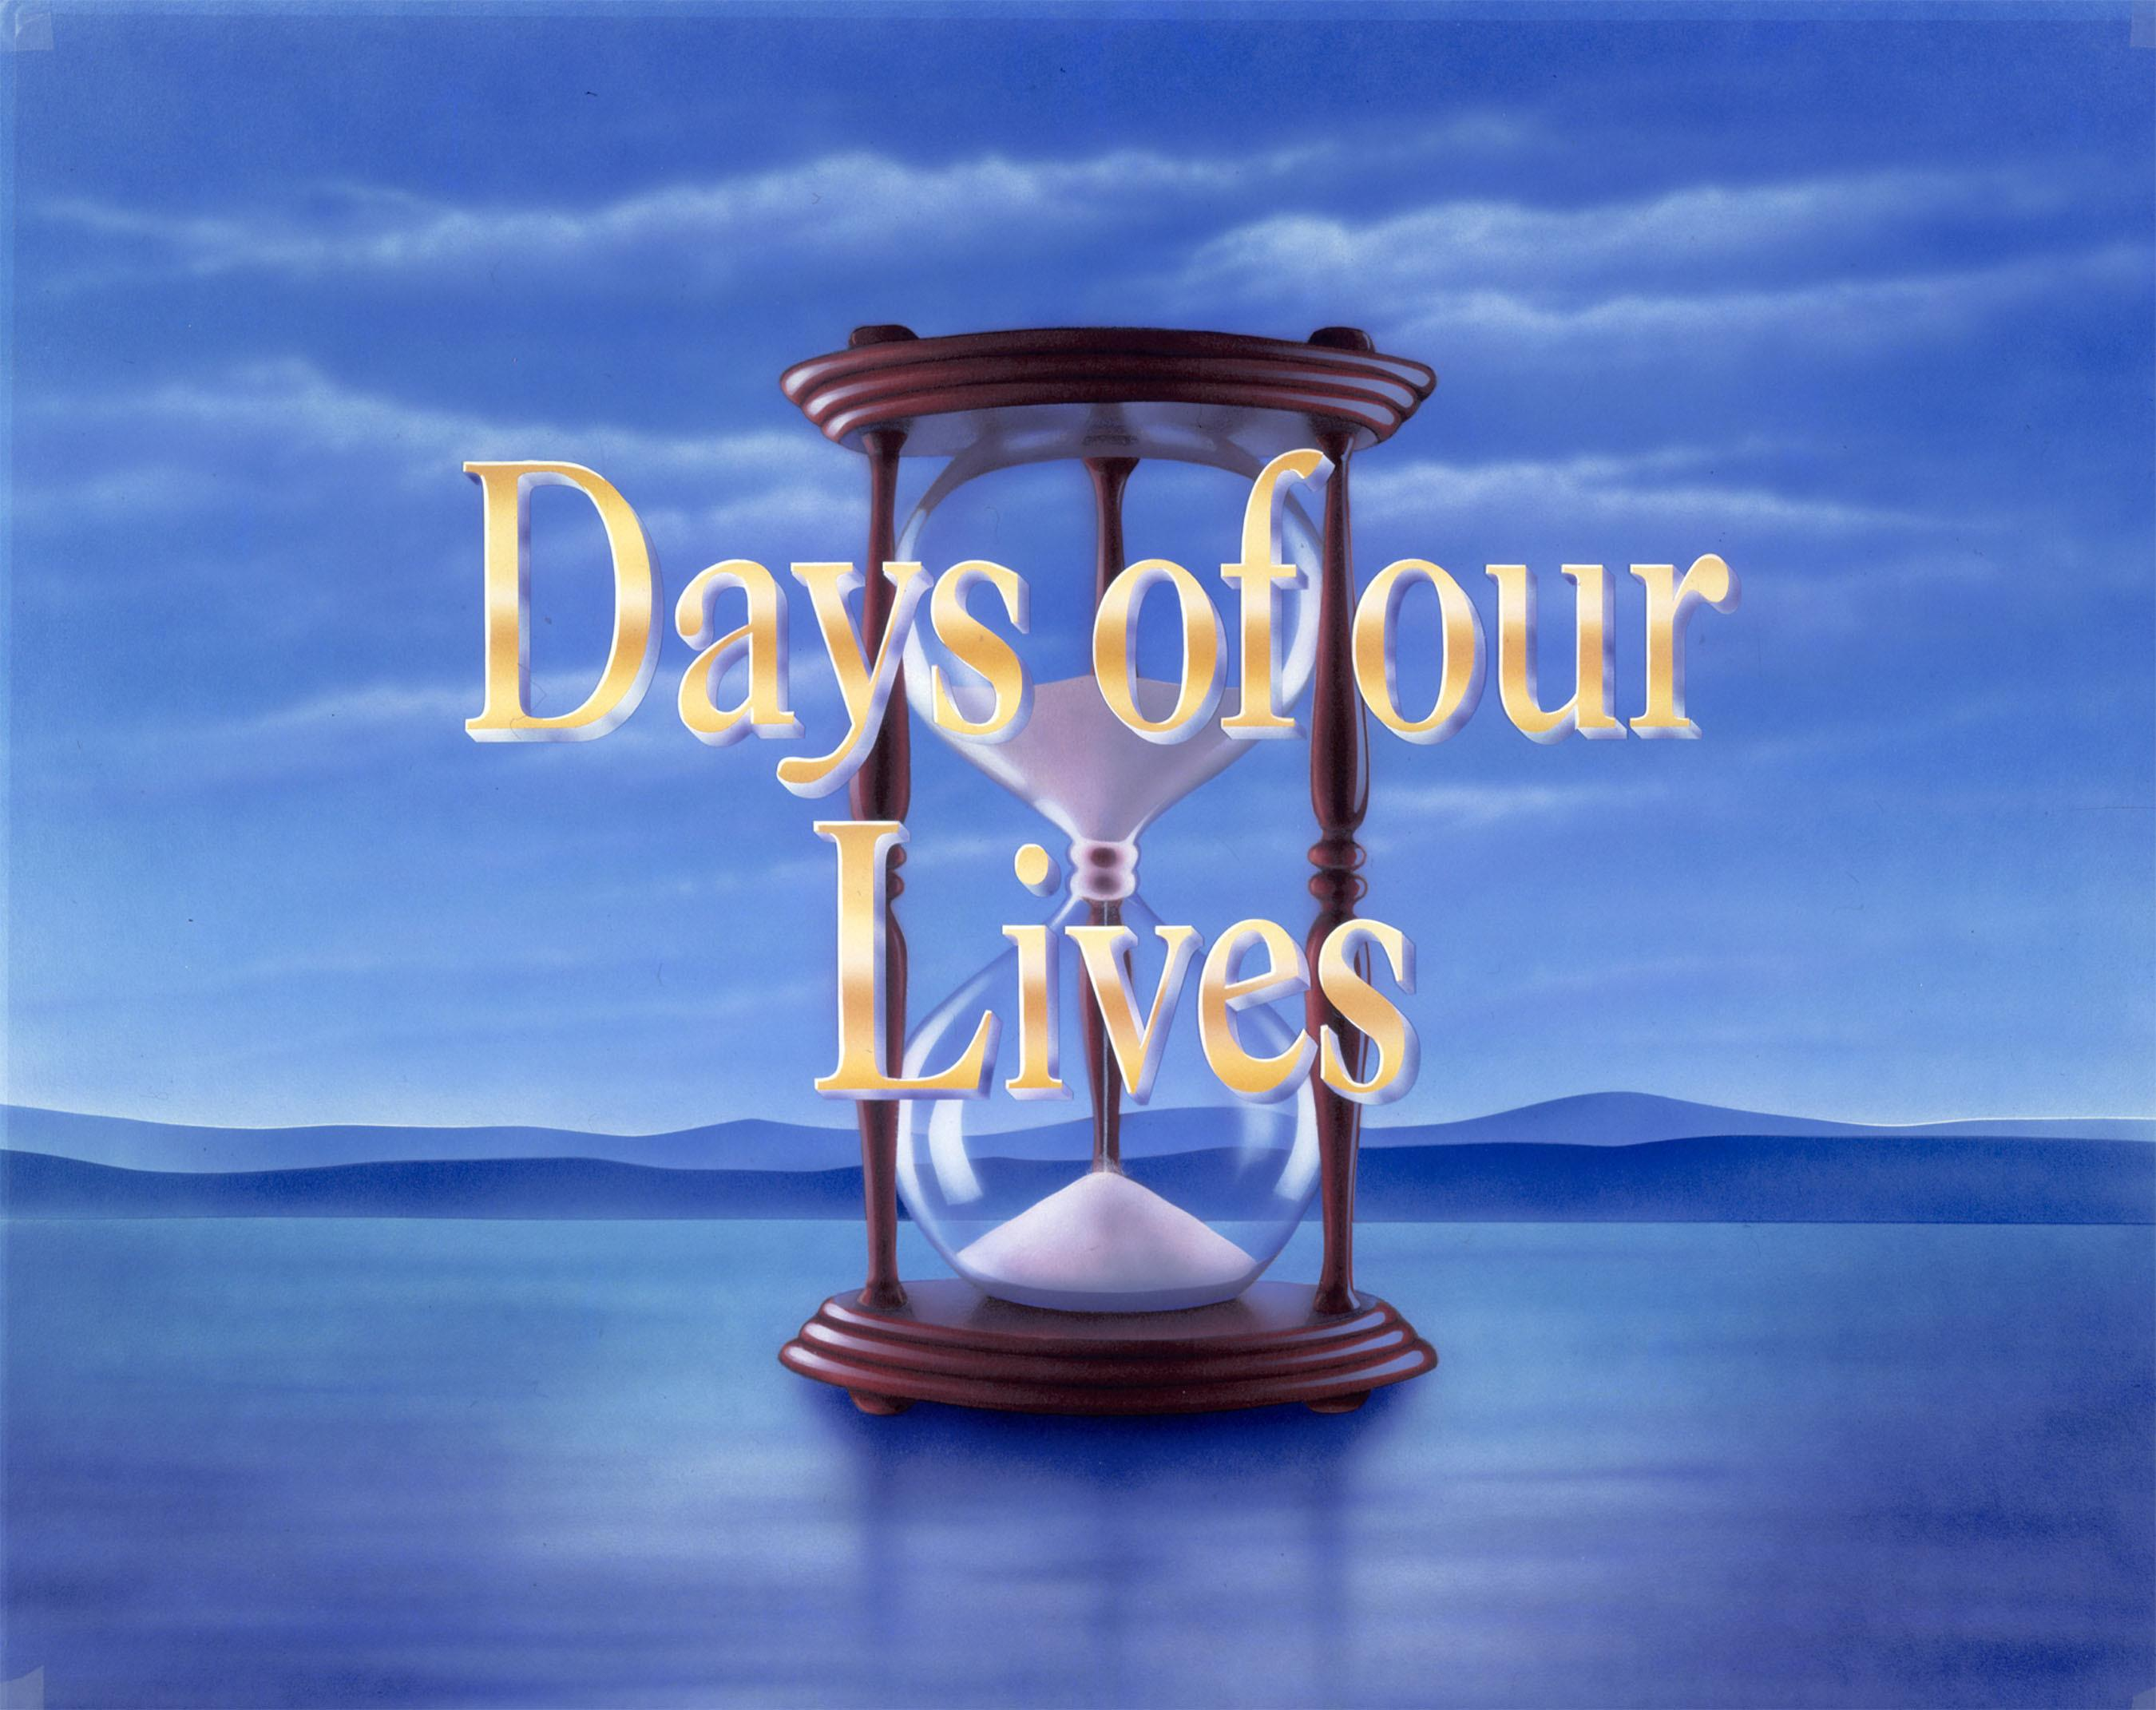 'Days Of Our Lives' Renewed By NBC